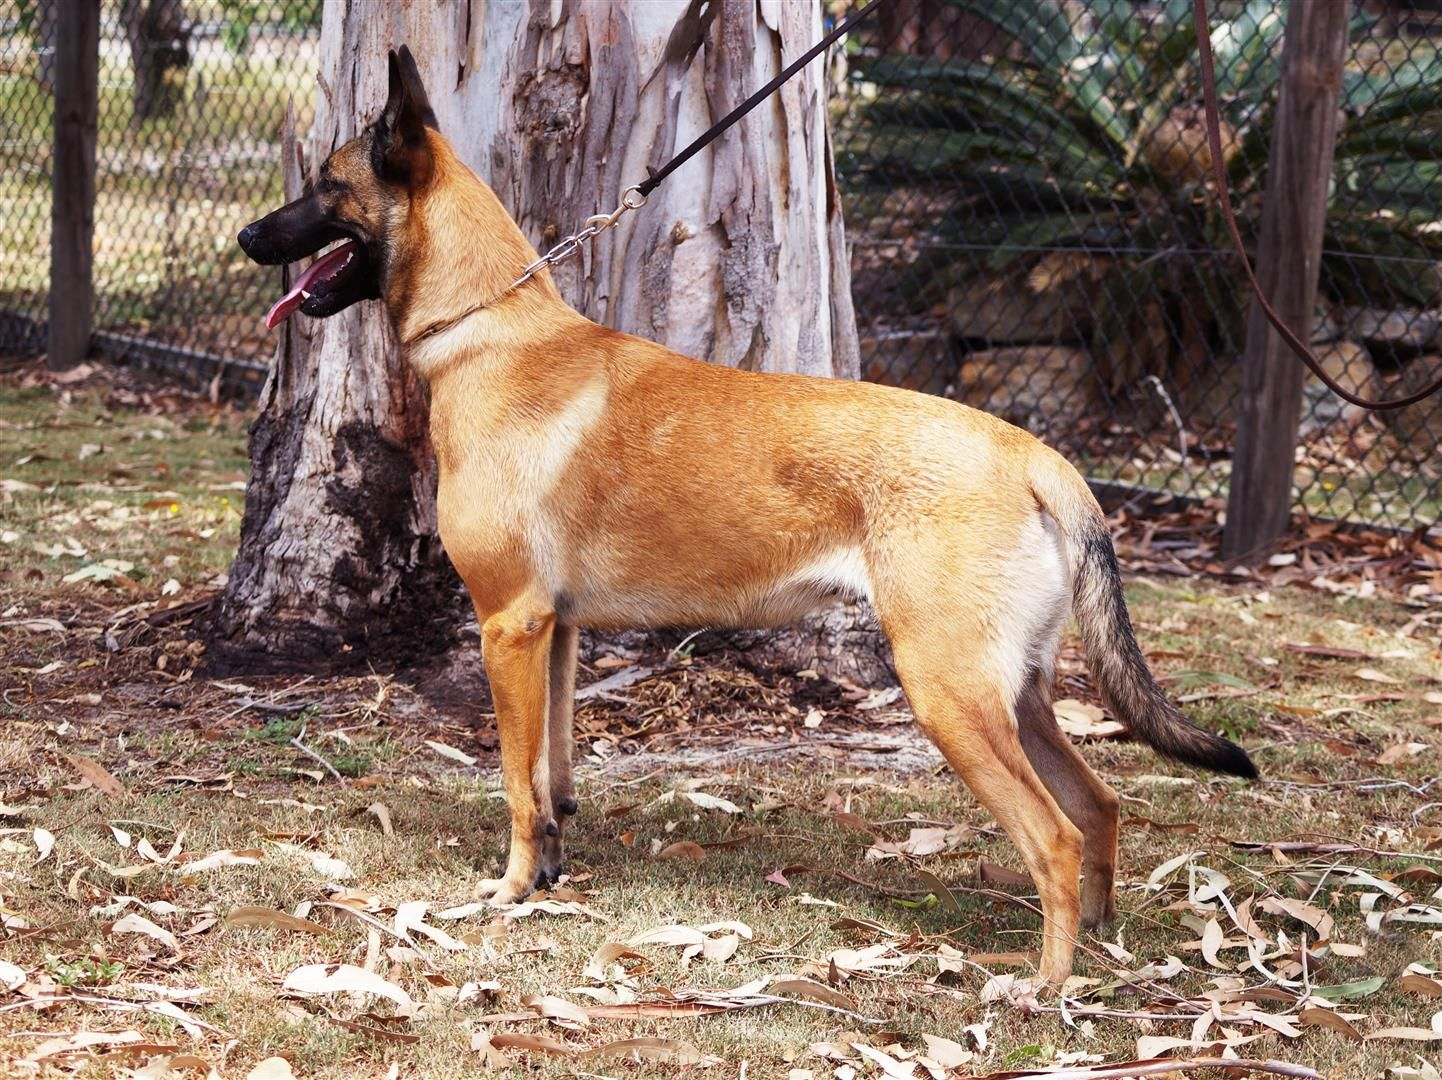 Nordenstamm Ellie Zico V D Berlex Hoeve X Lilo V D Krahenschmiede 22 Months Bh Bred Owned By Nordenstamm Malinois Dog Malinois Military Working Dogs